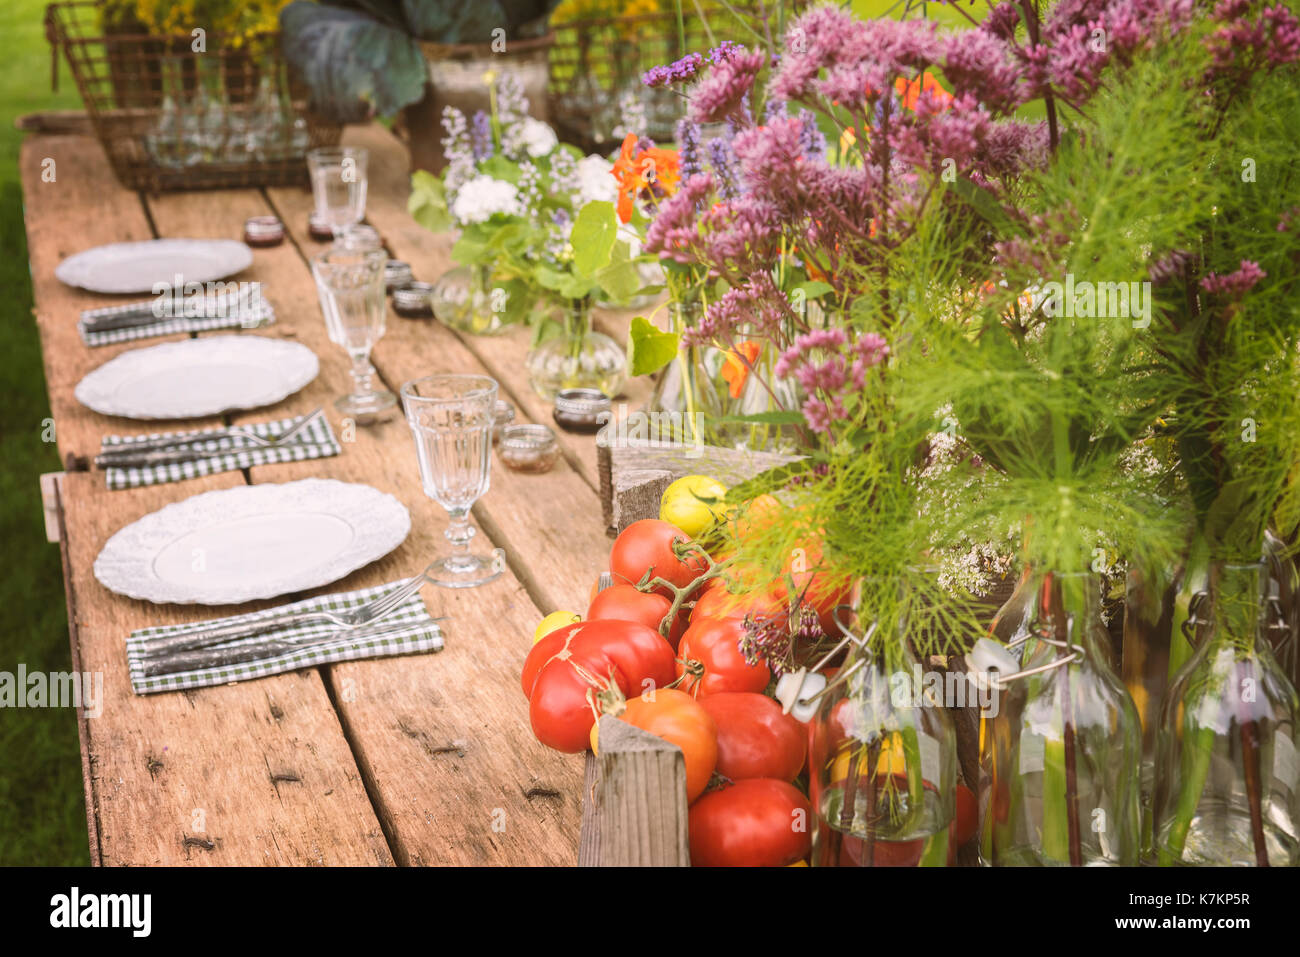 Wooden table setup for garden party or dinner reception. - Stock Image